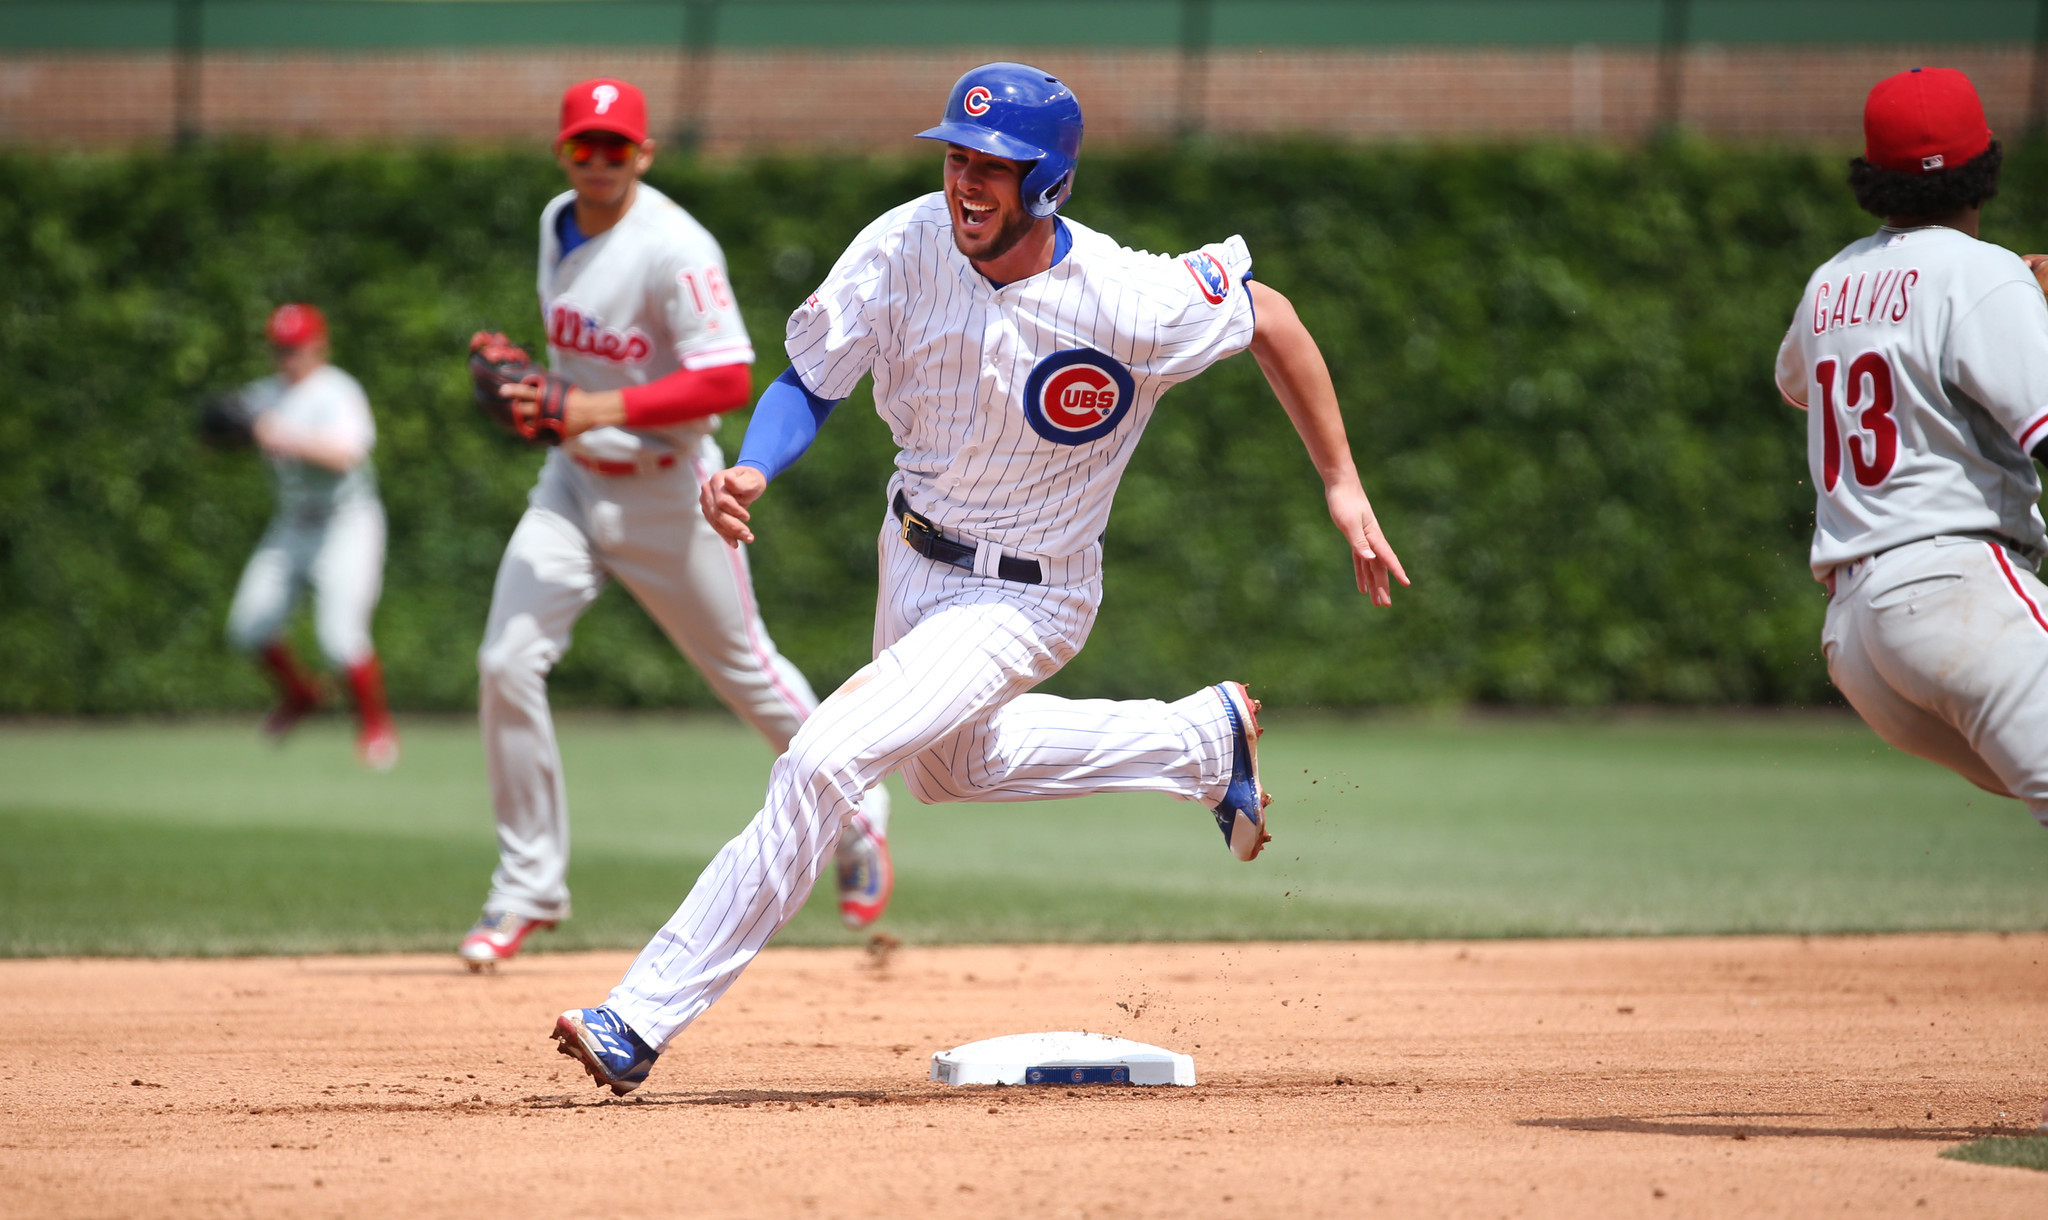 Ct-gameday-cubs-phillies-spt-0529-20160528